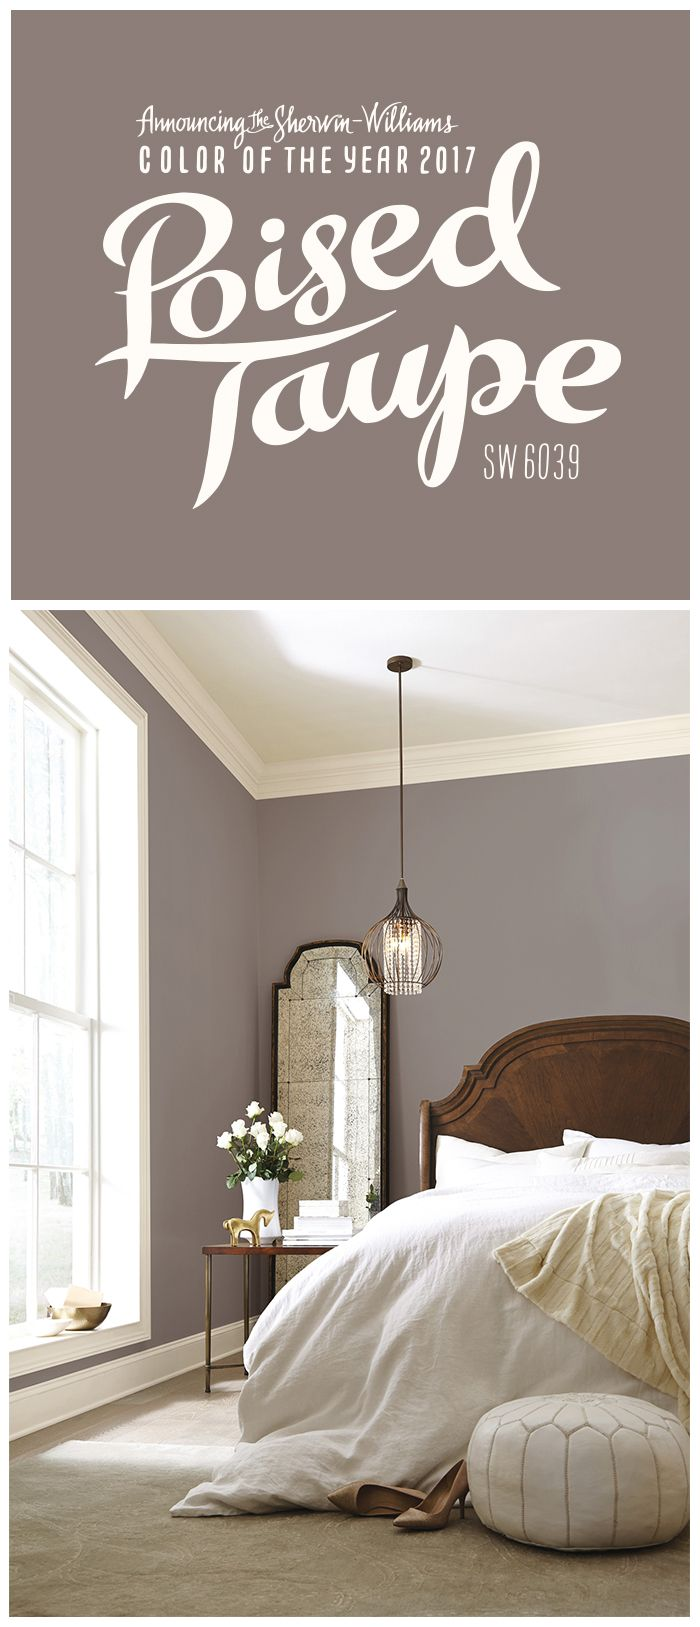 We re thrilled about our 2017 color of the year poised Taupe room ideas